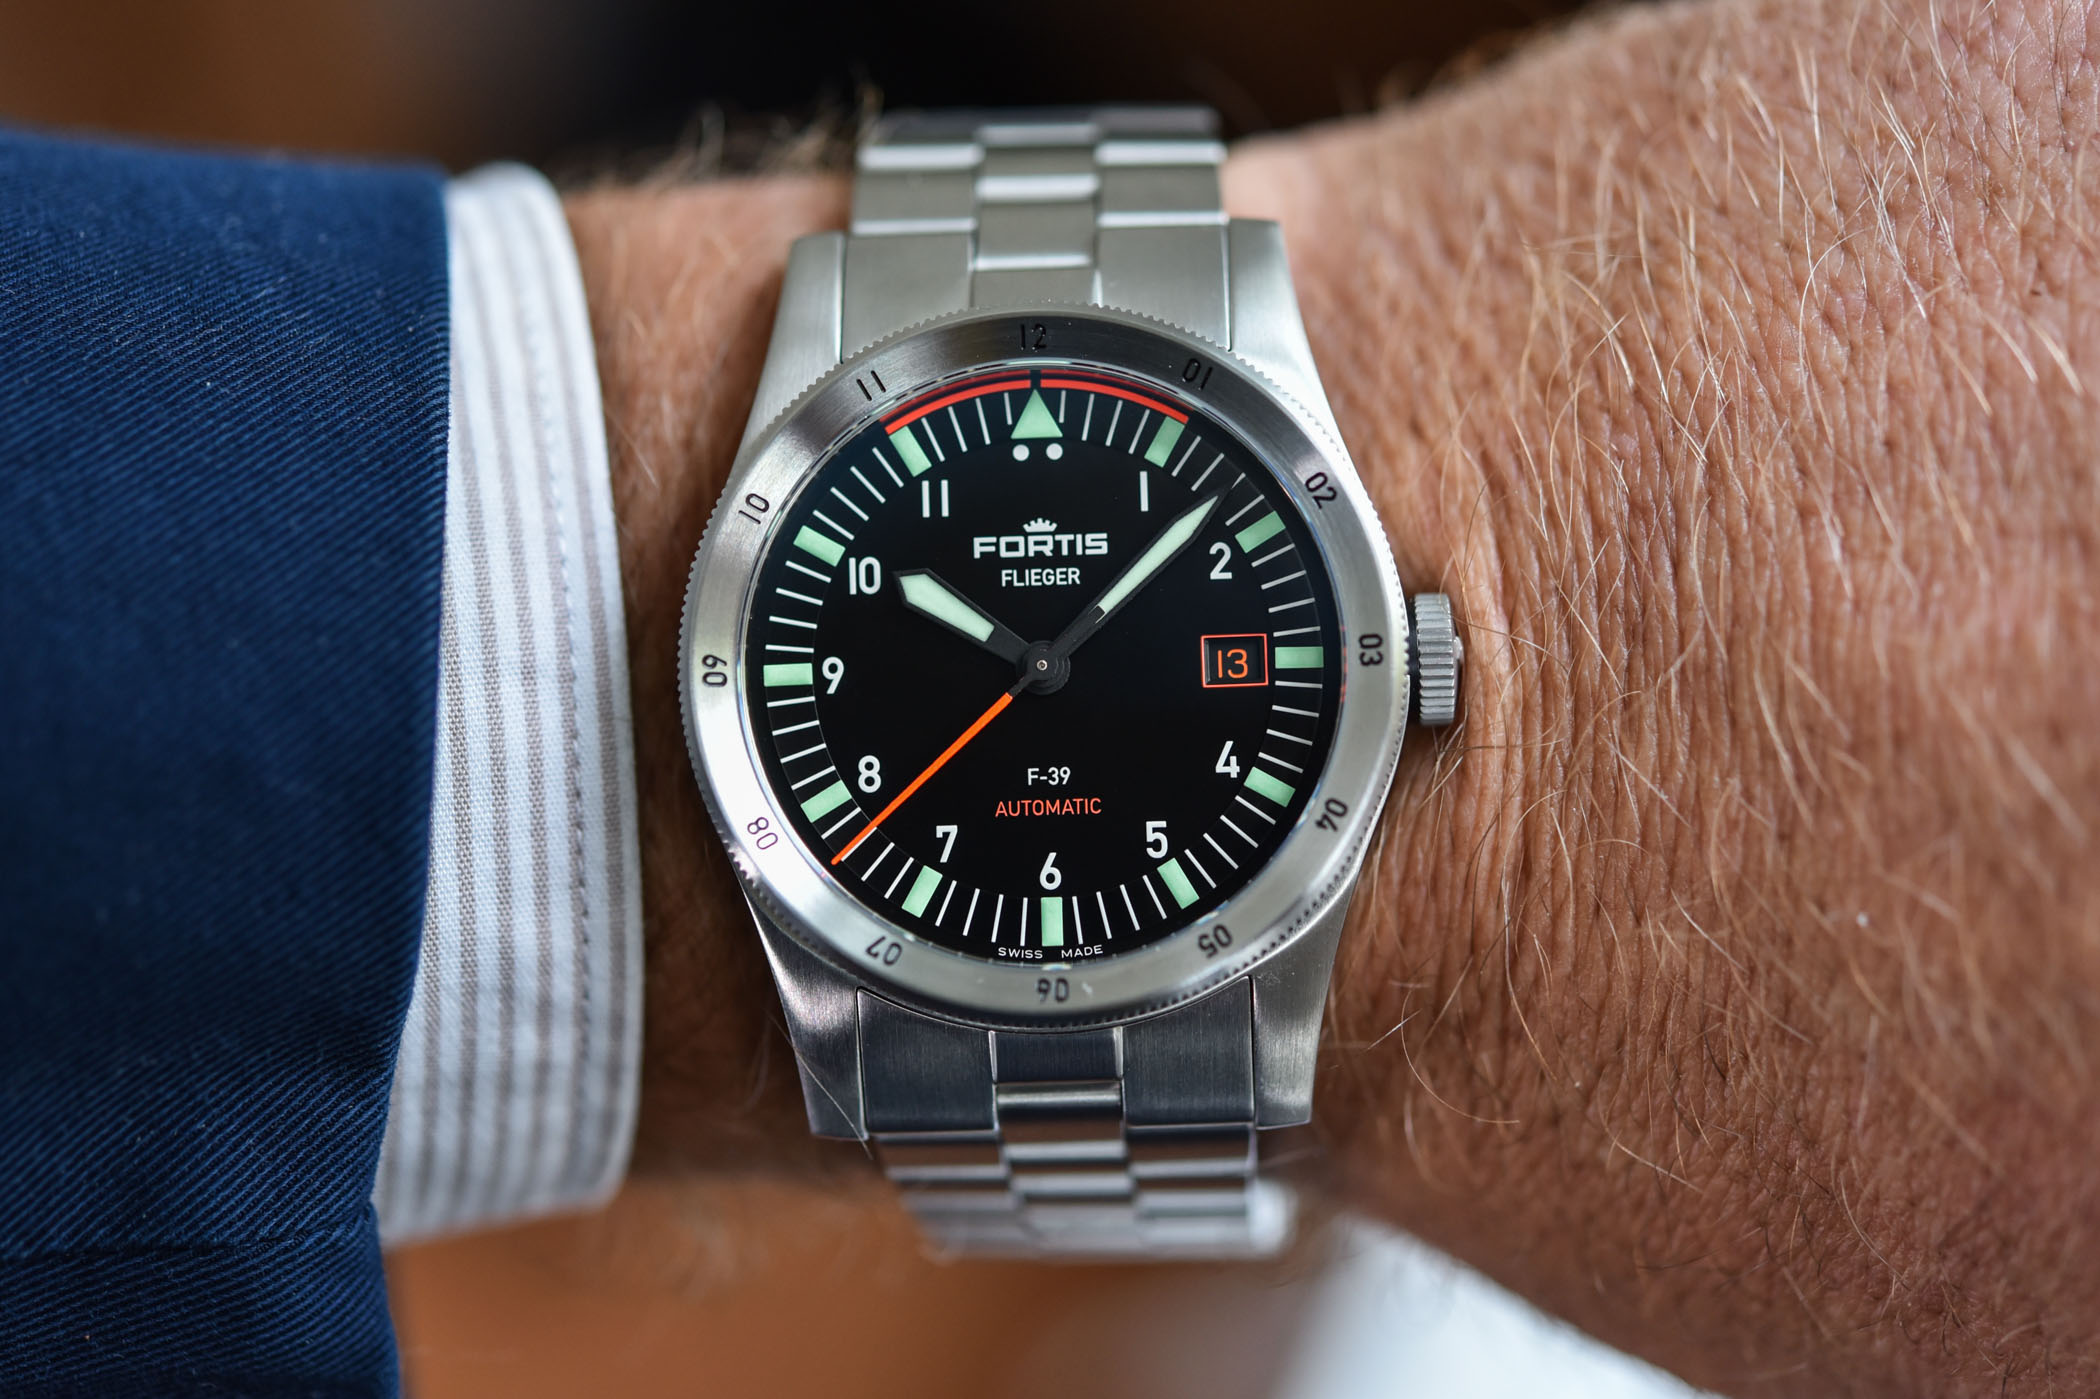 Fortis Flieger F-41 Automatic - Fortis Flieger F-39 Automatic - 2